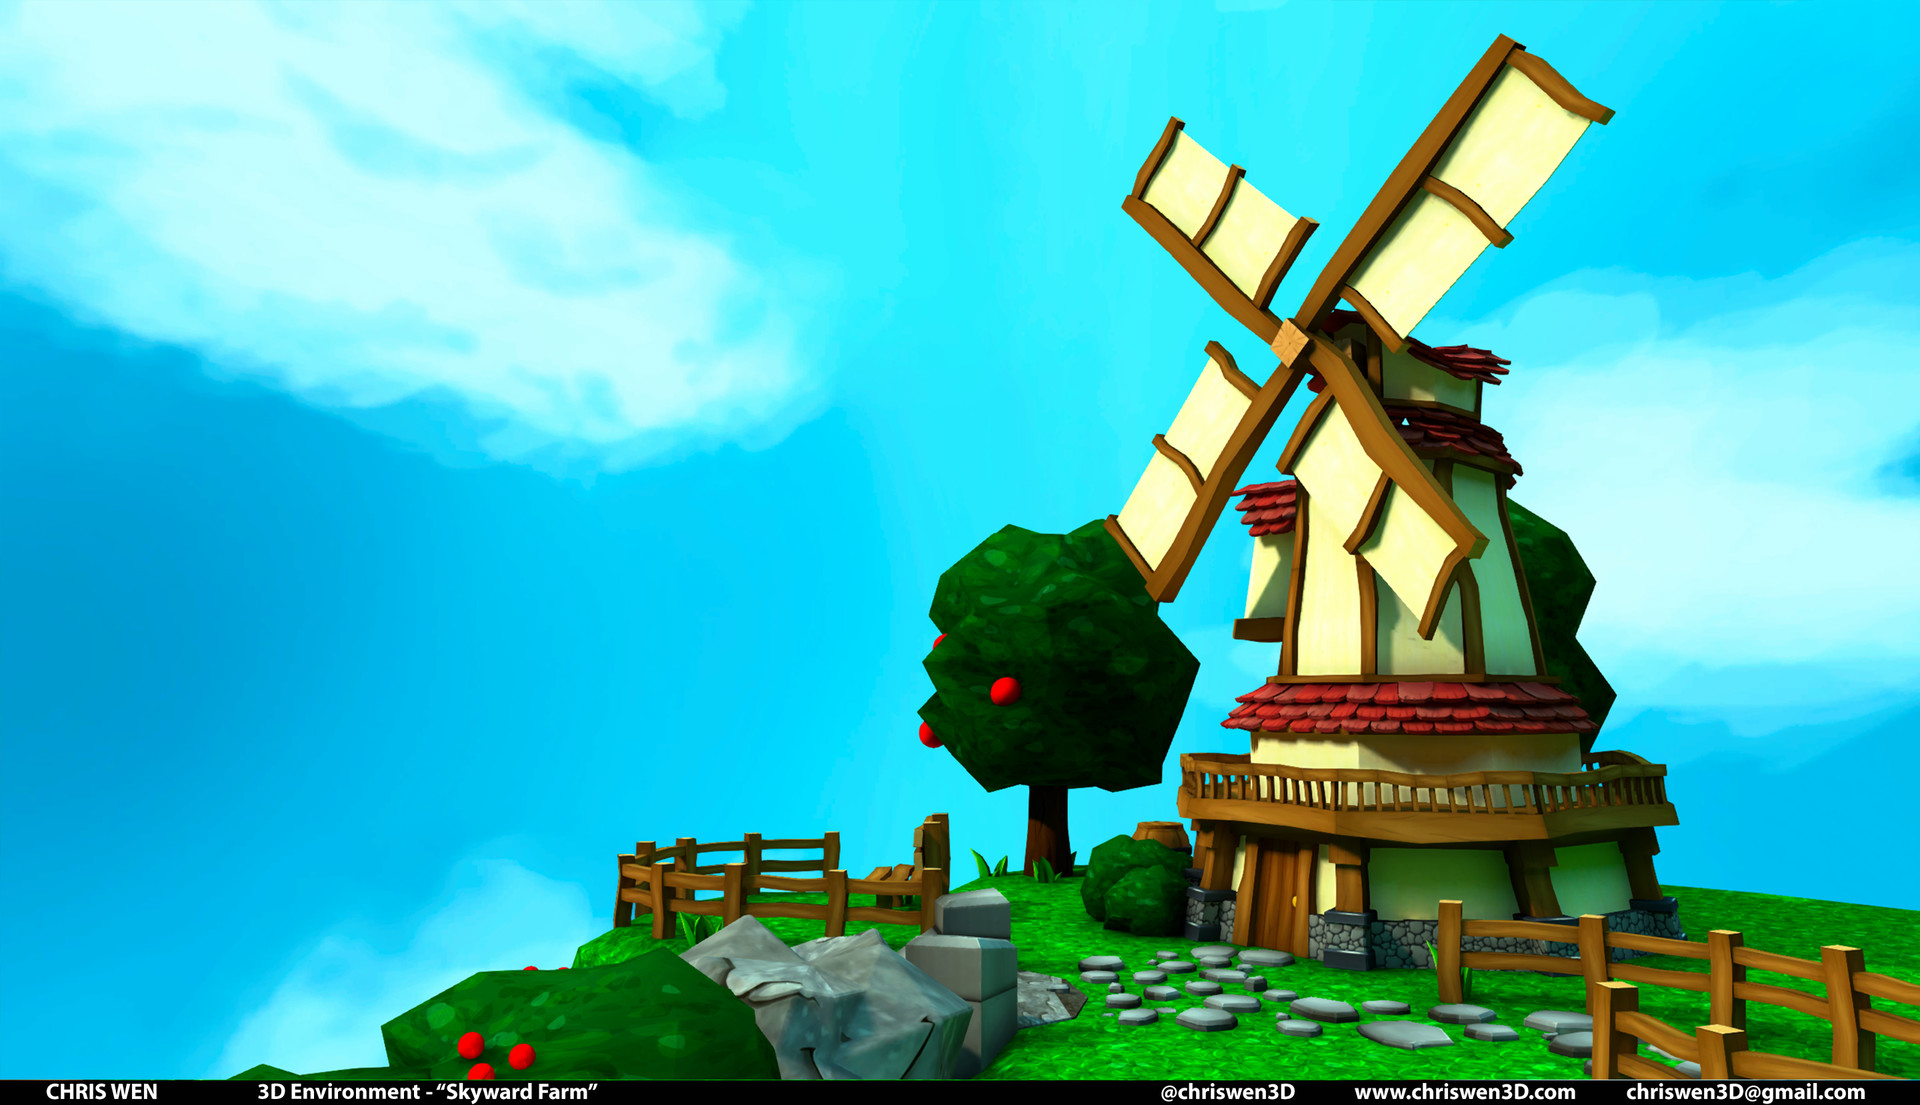 Chris wen windmill